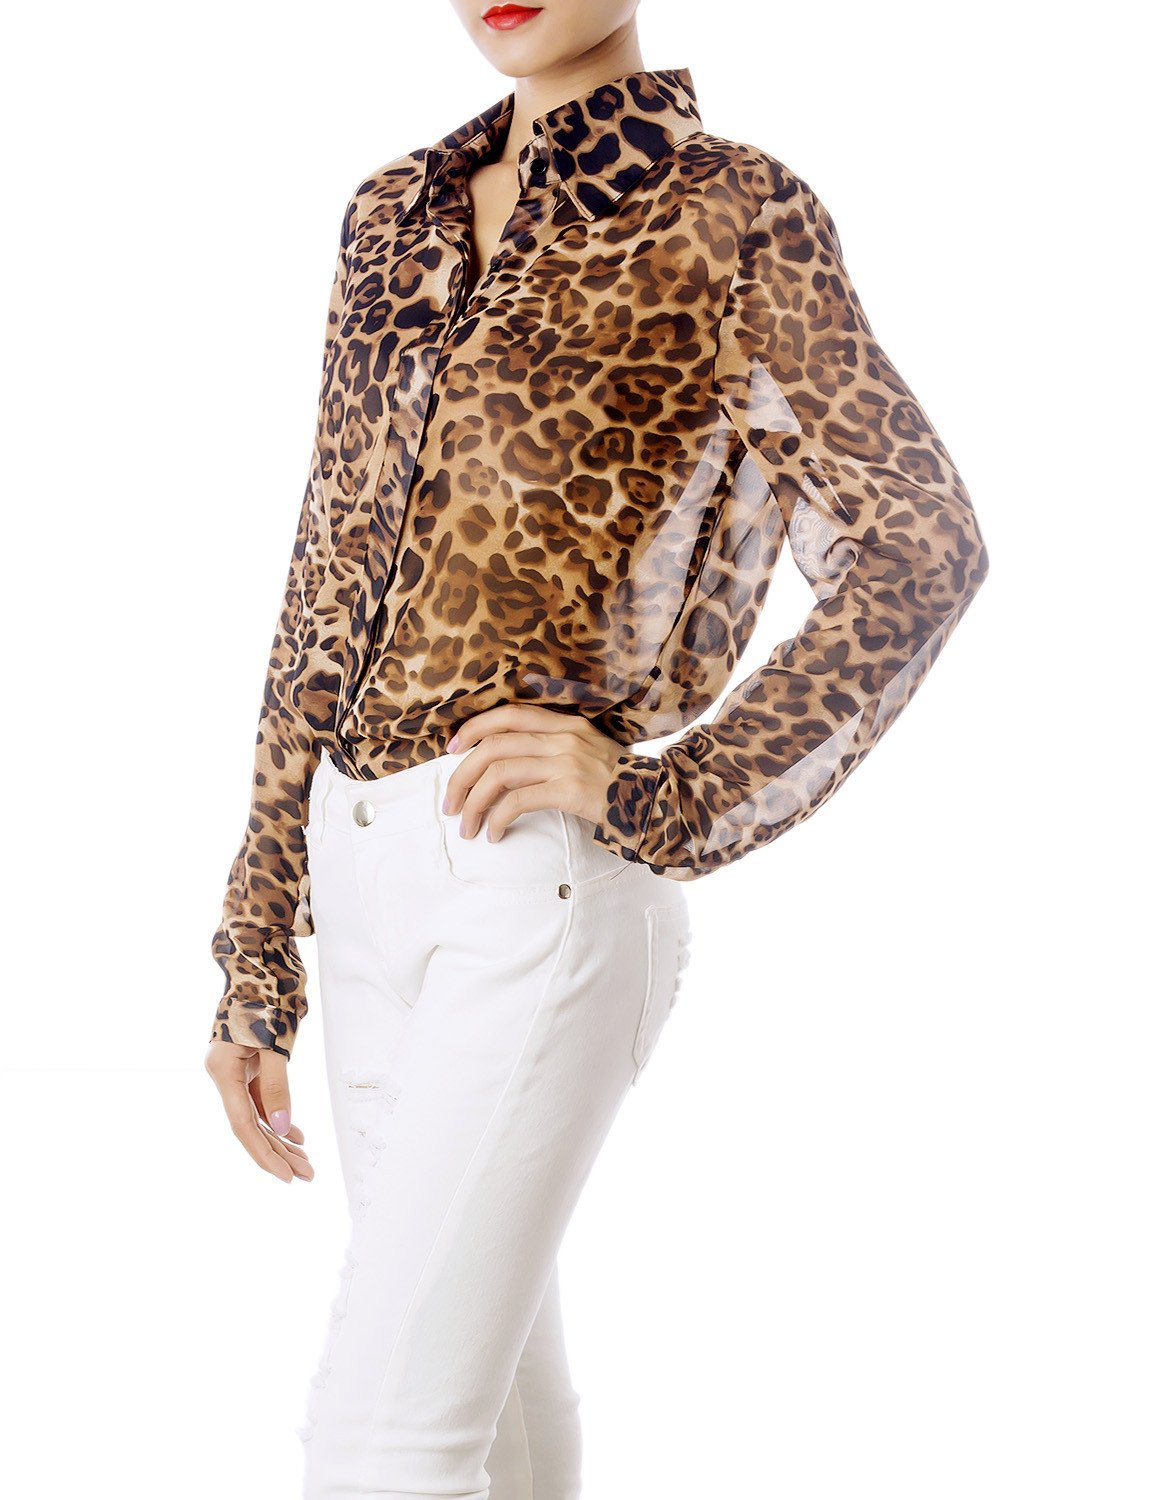 Women's Sheer Tulle Leopard Prints Long Sleeves Button Down Spread Shirt, Size: L, Brown